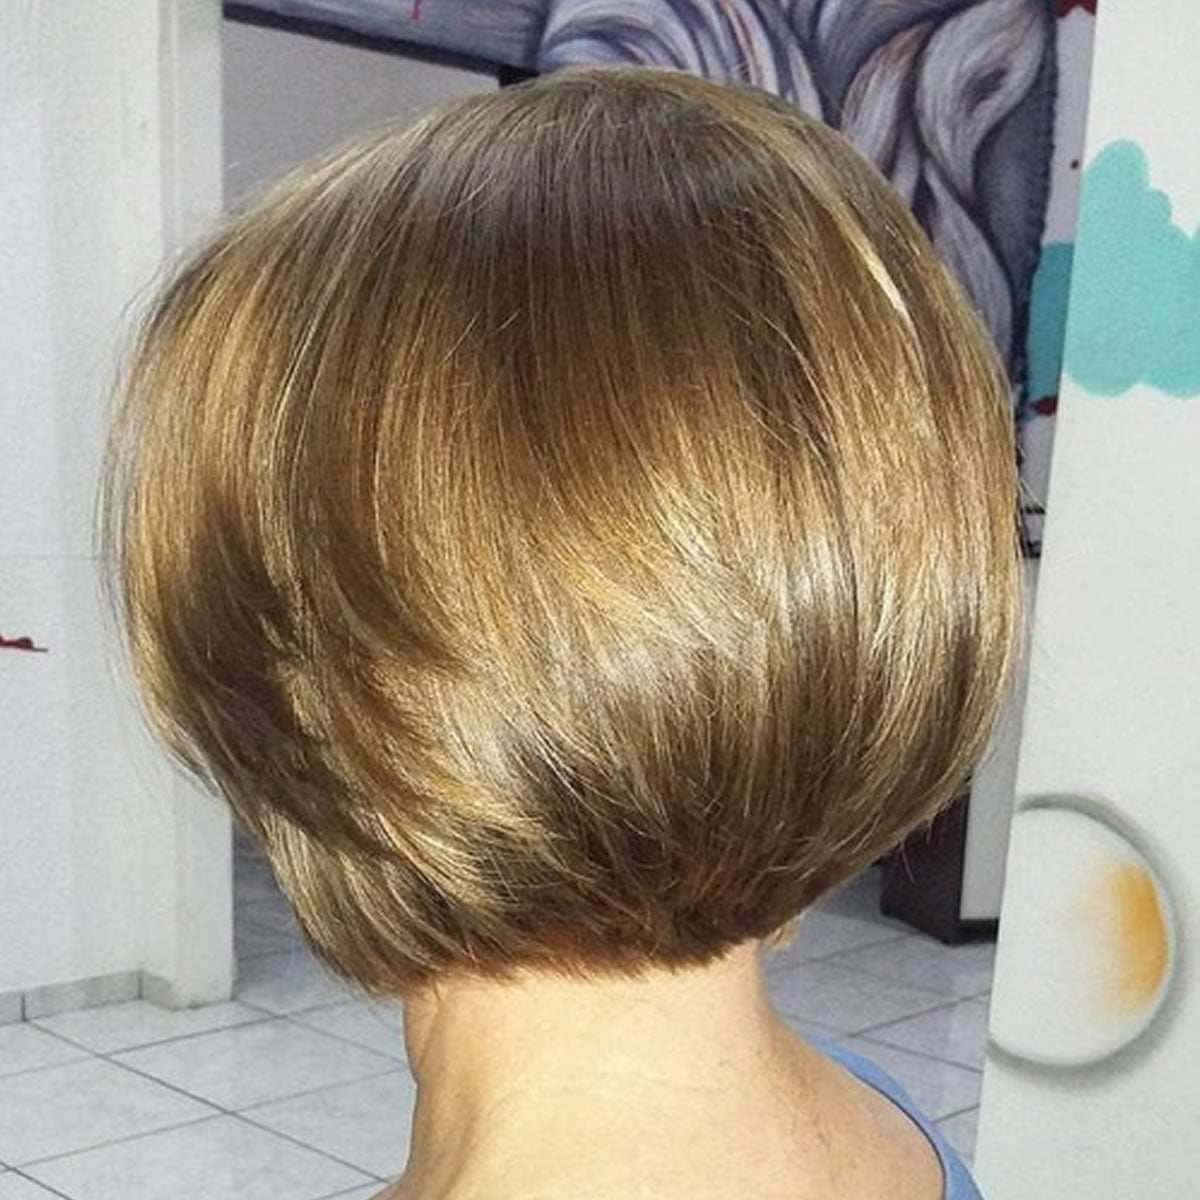 blonde short haircut